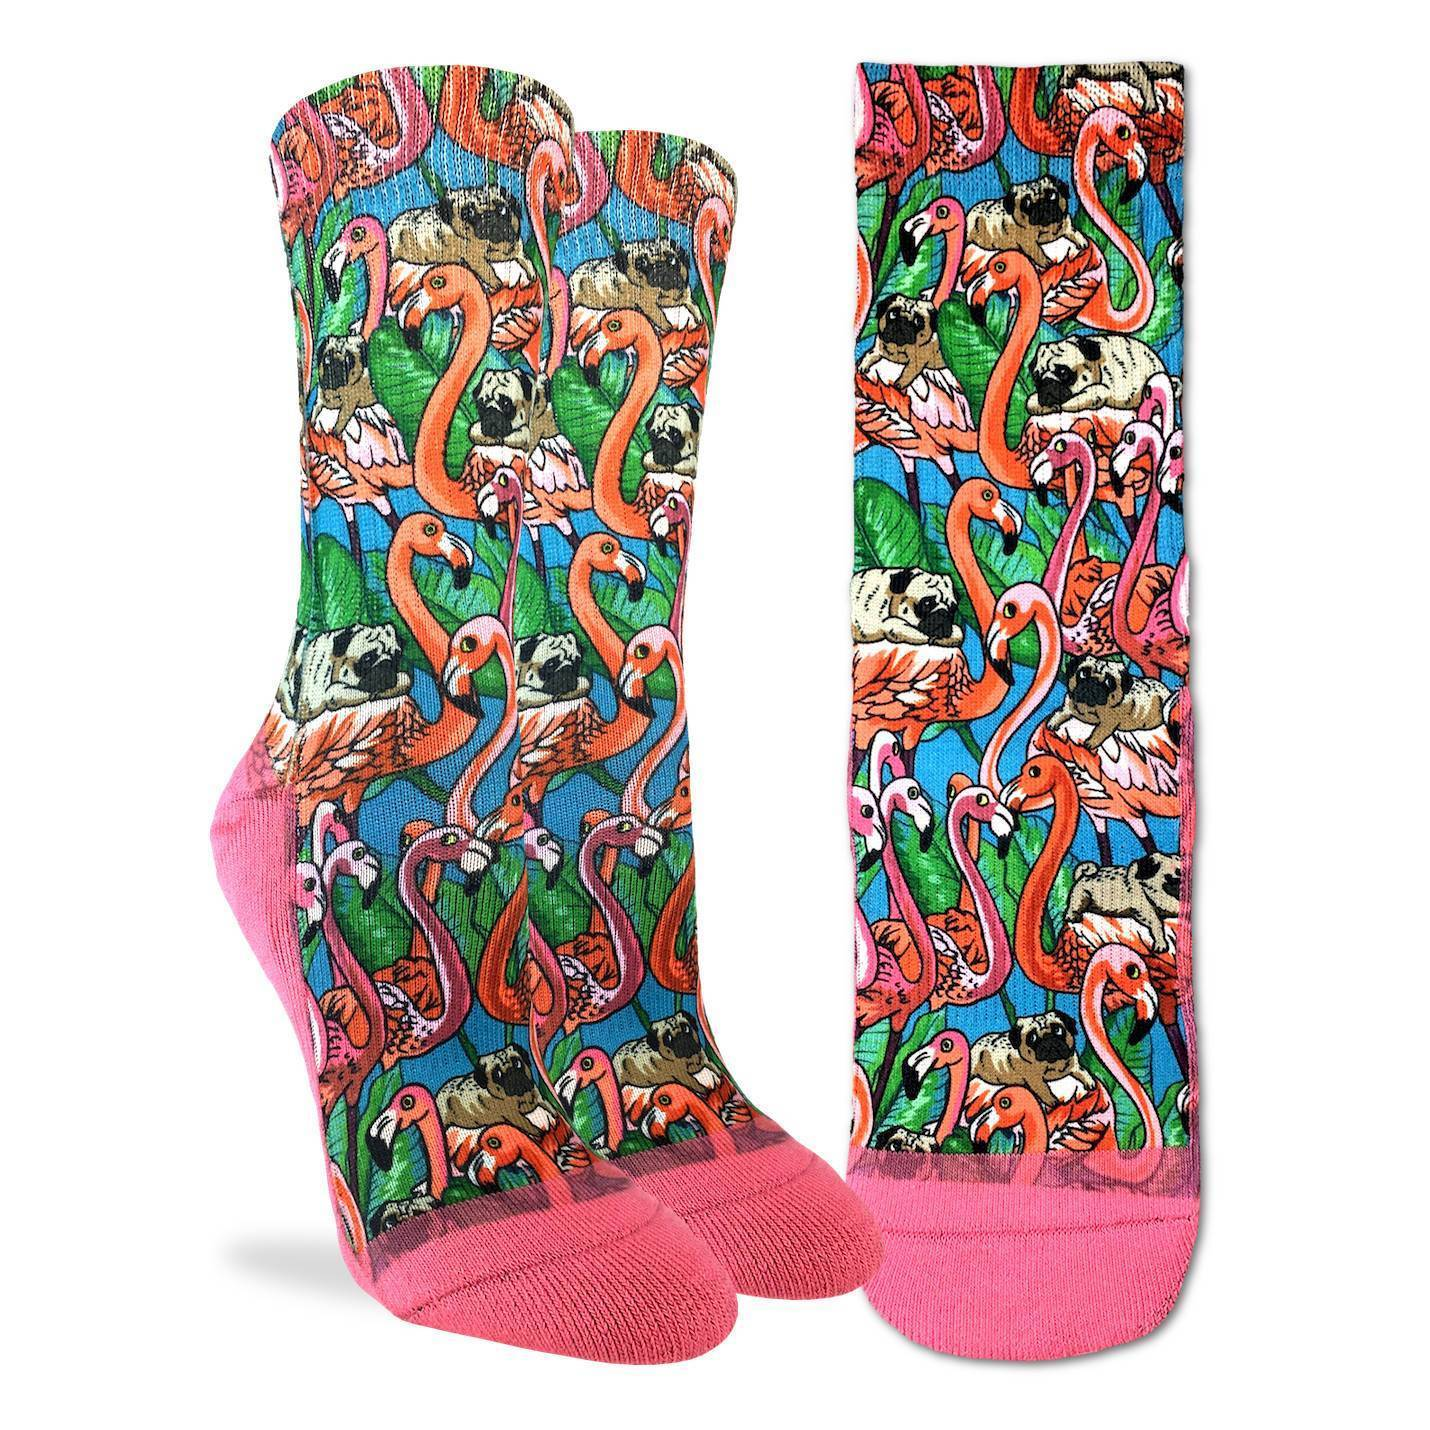 Women's Pugs & Flamingos Socks - Good Luck Sock